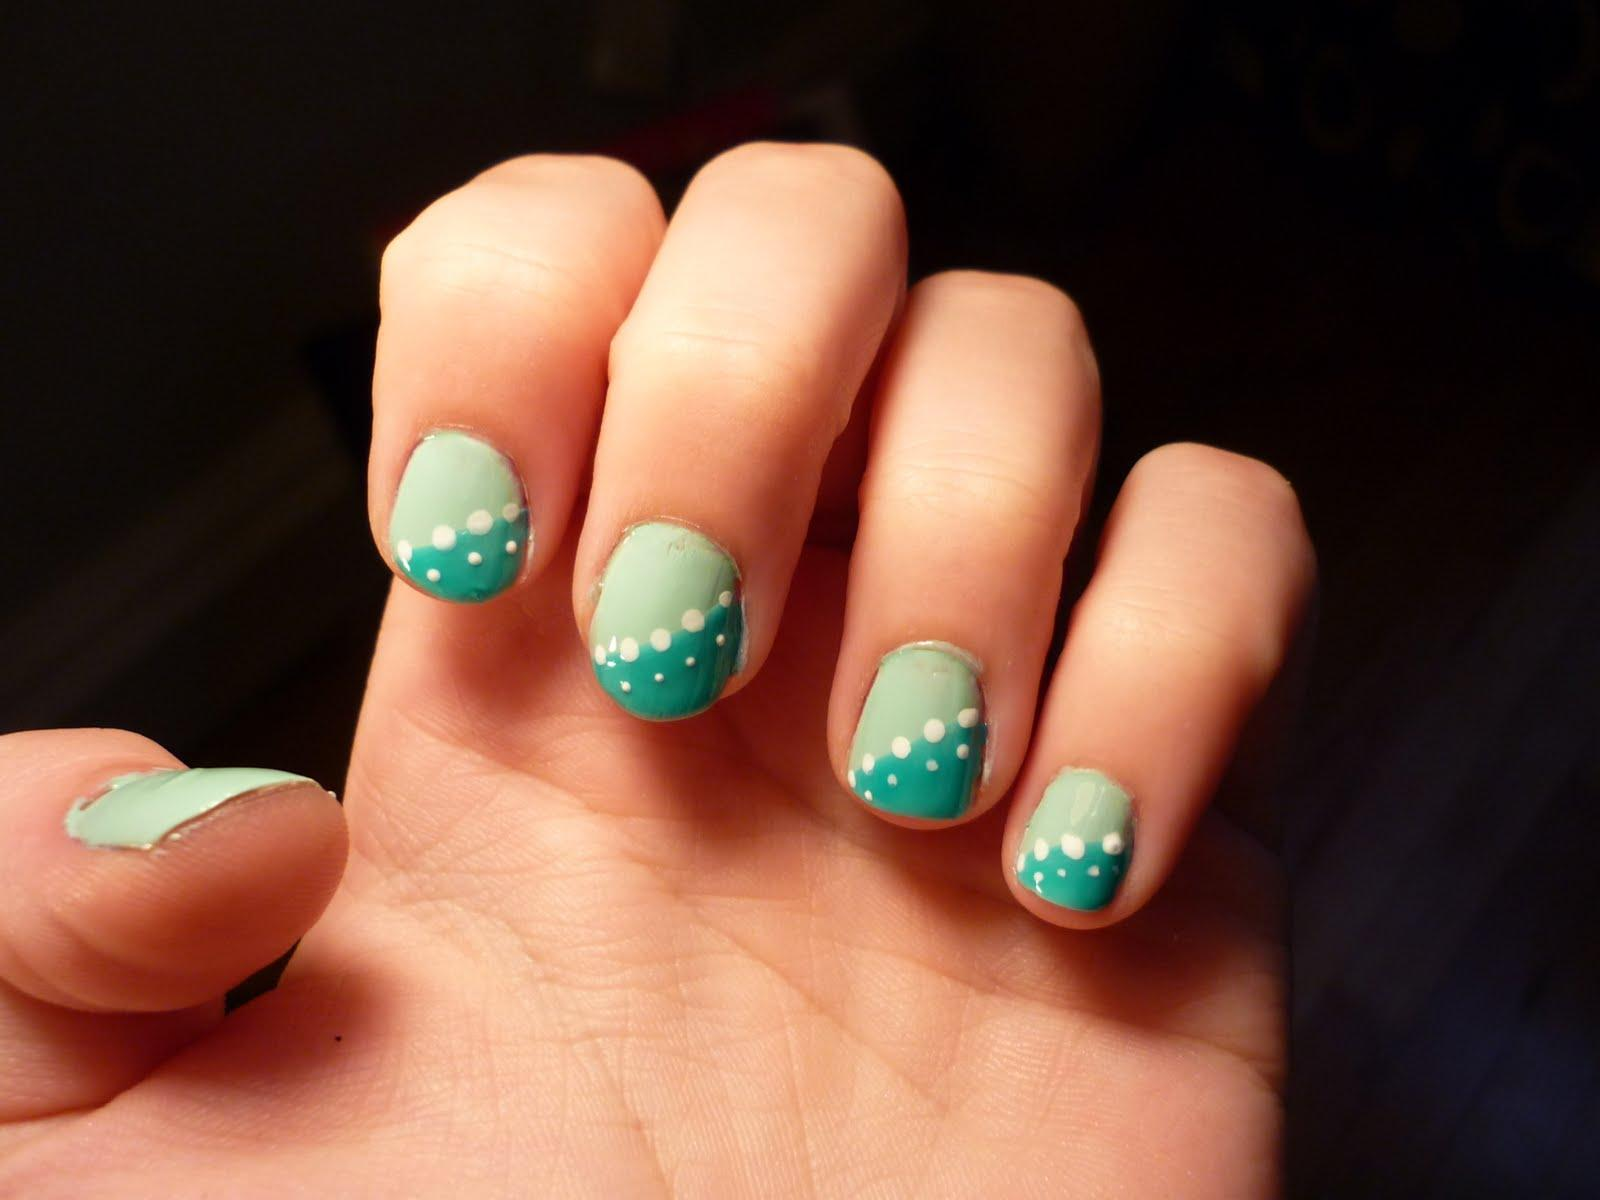 Muchas fotos de dise os de u as muy elegantes y a la moda - Easy nail design ideas to do at home ...